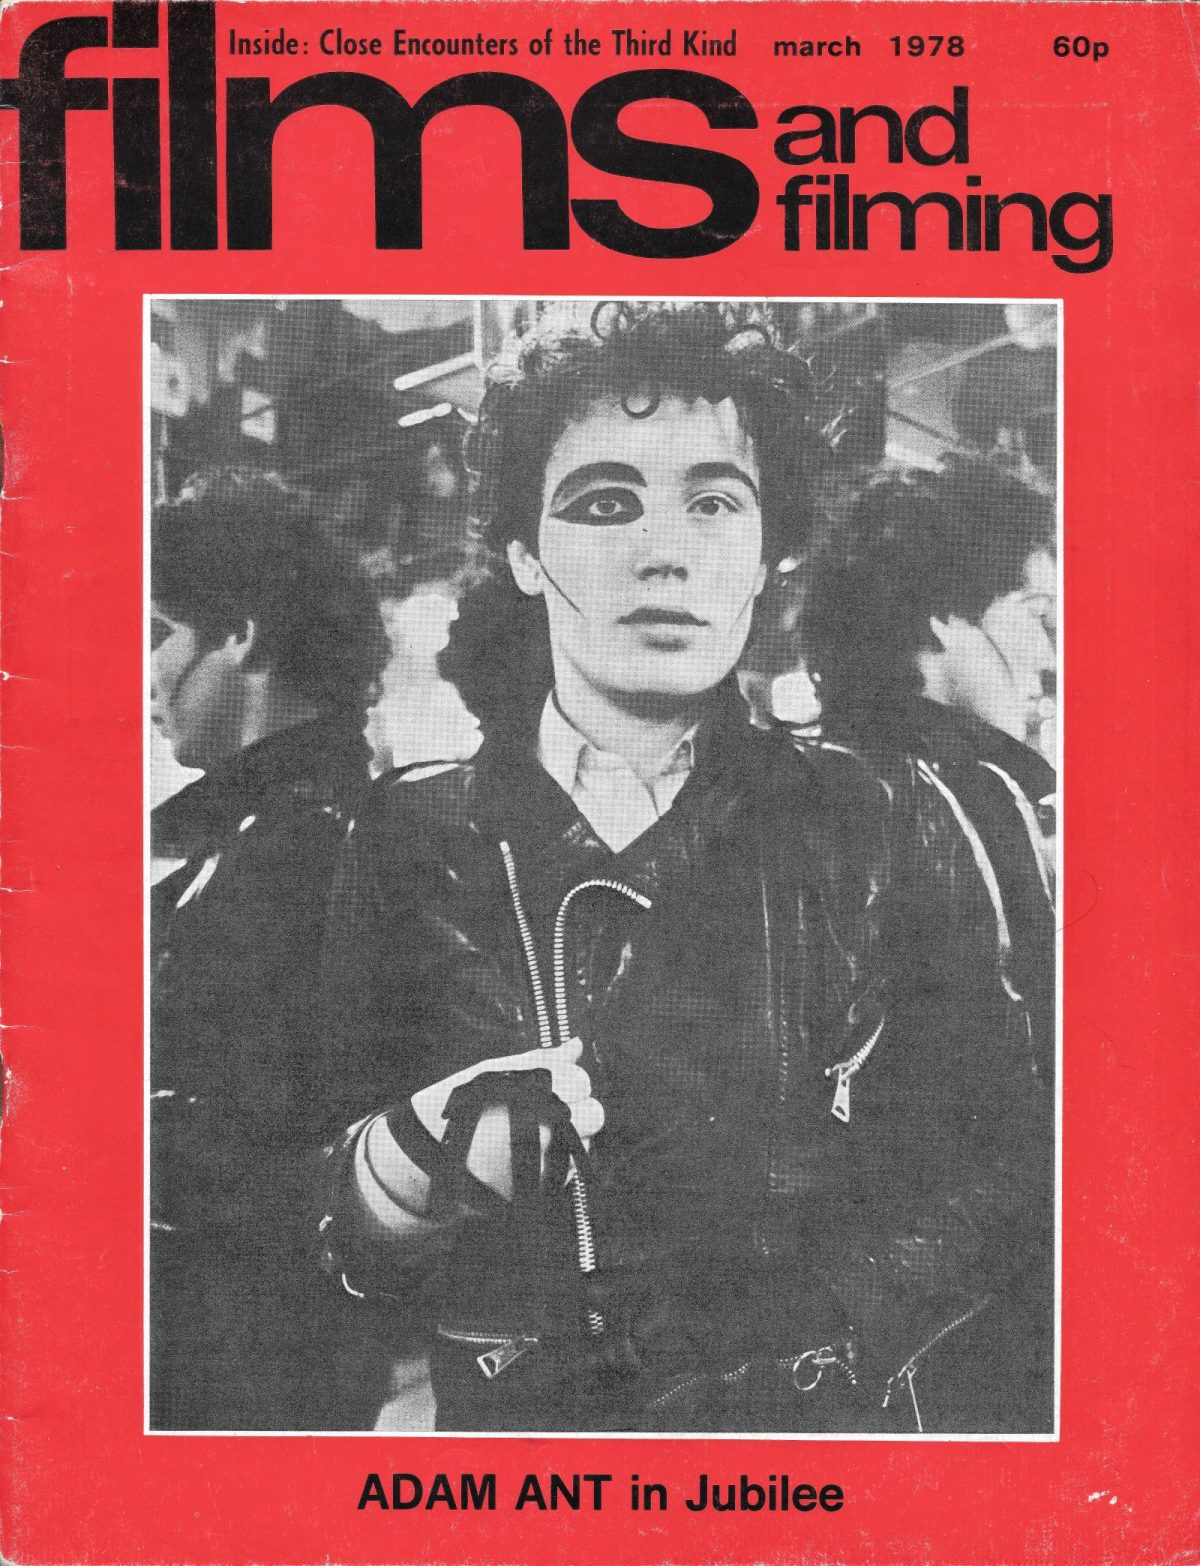 Films & Filming, film, magazines, Derek Jarman, Jubilee, punk, Adam Ant, 1970s